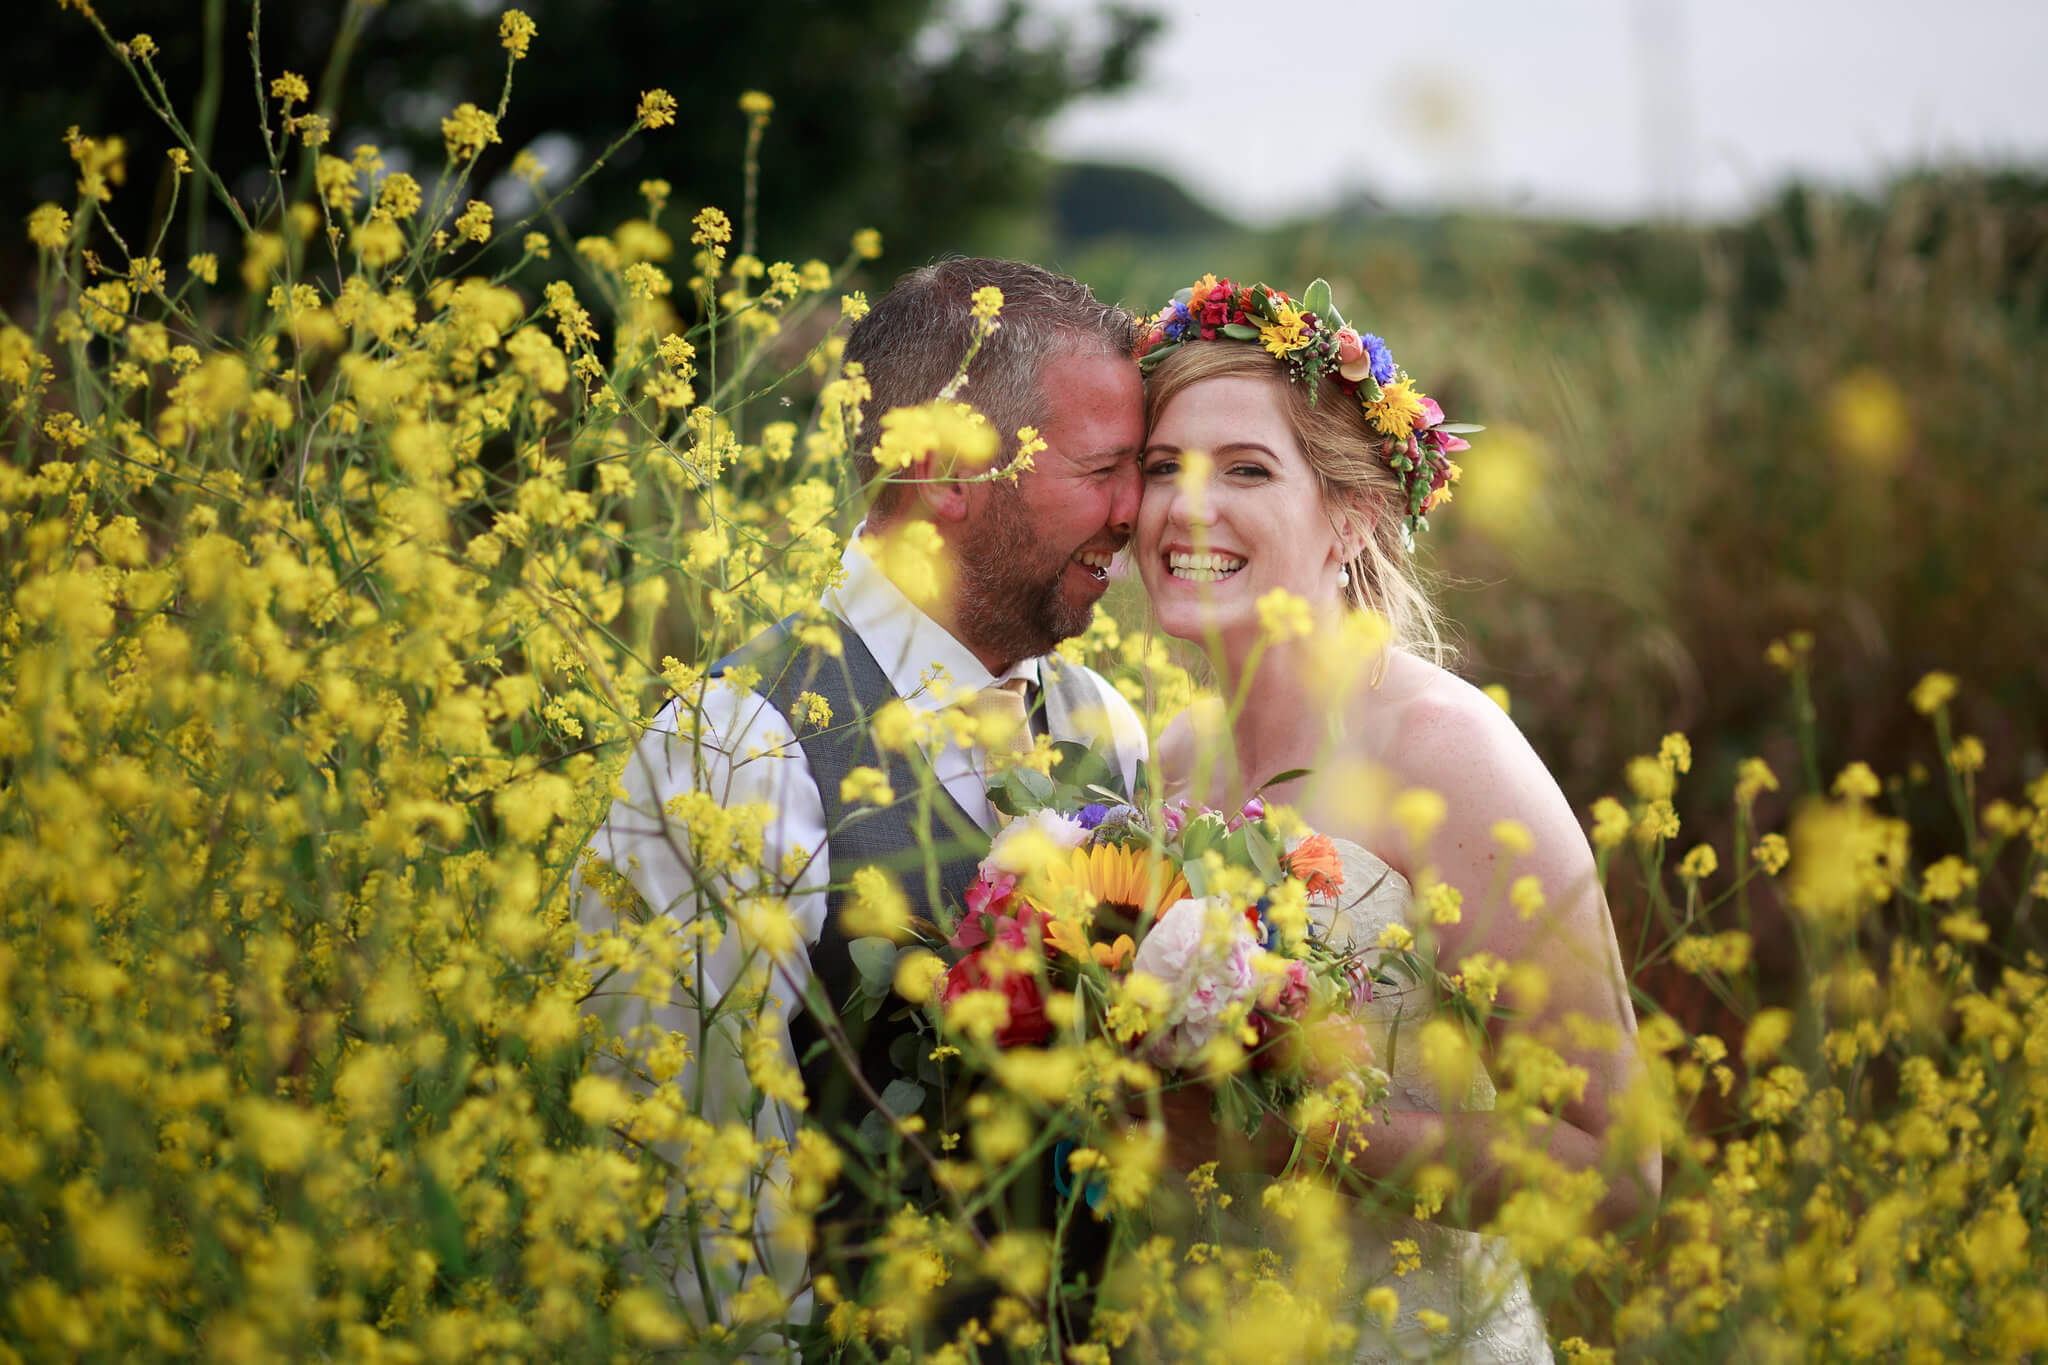 Floral wedding photography in Cornwall